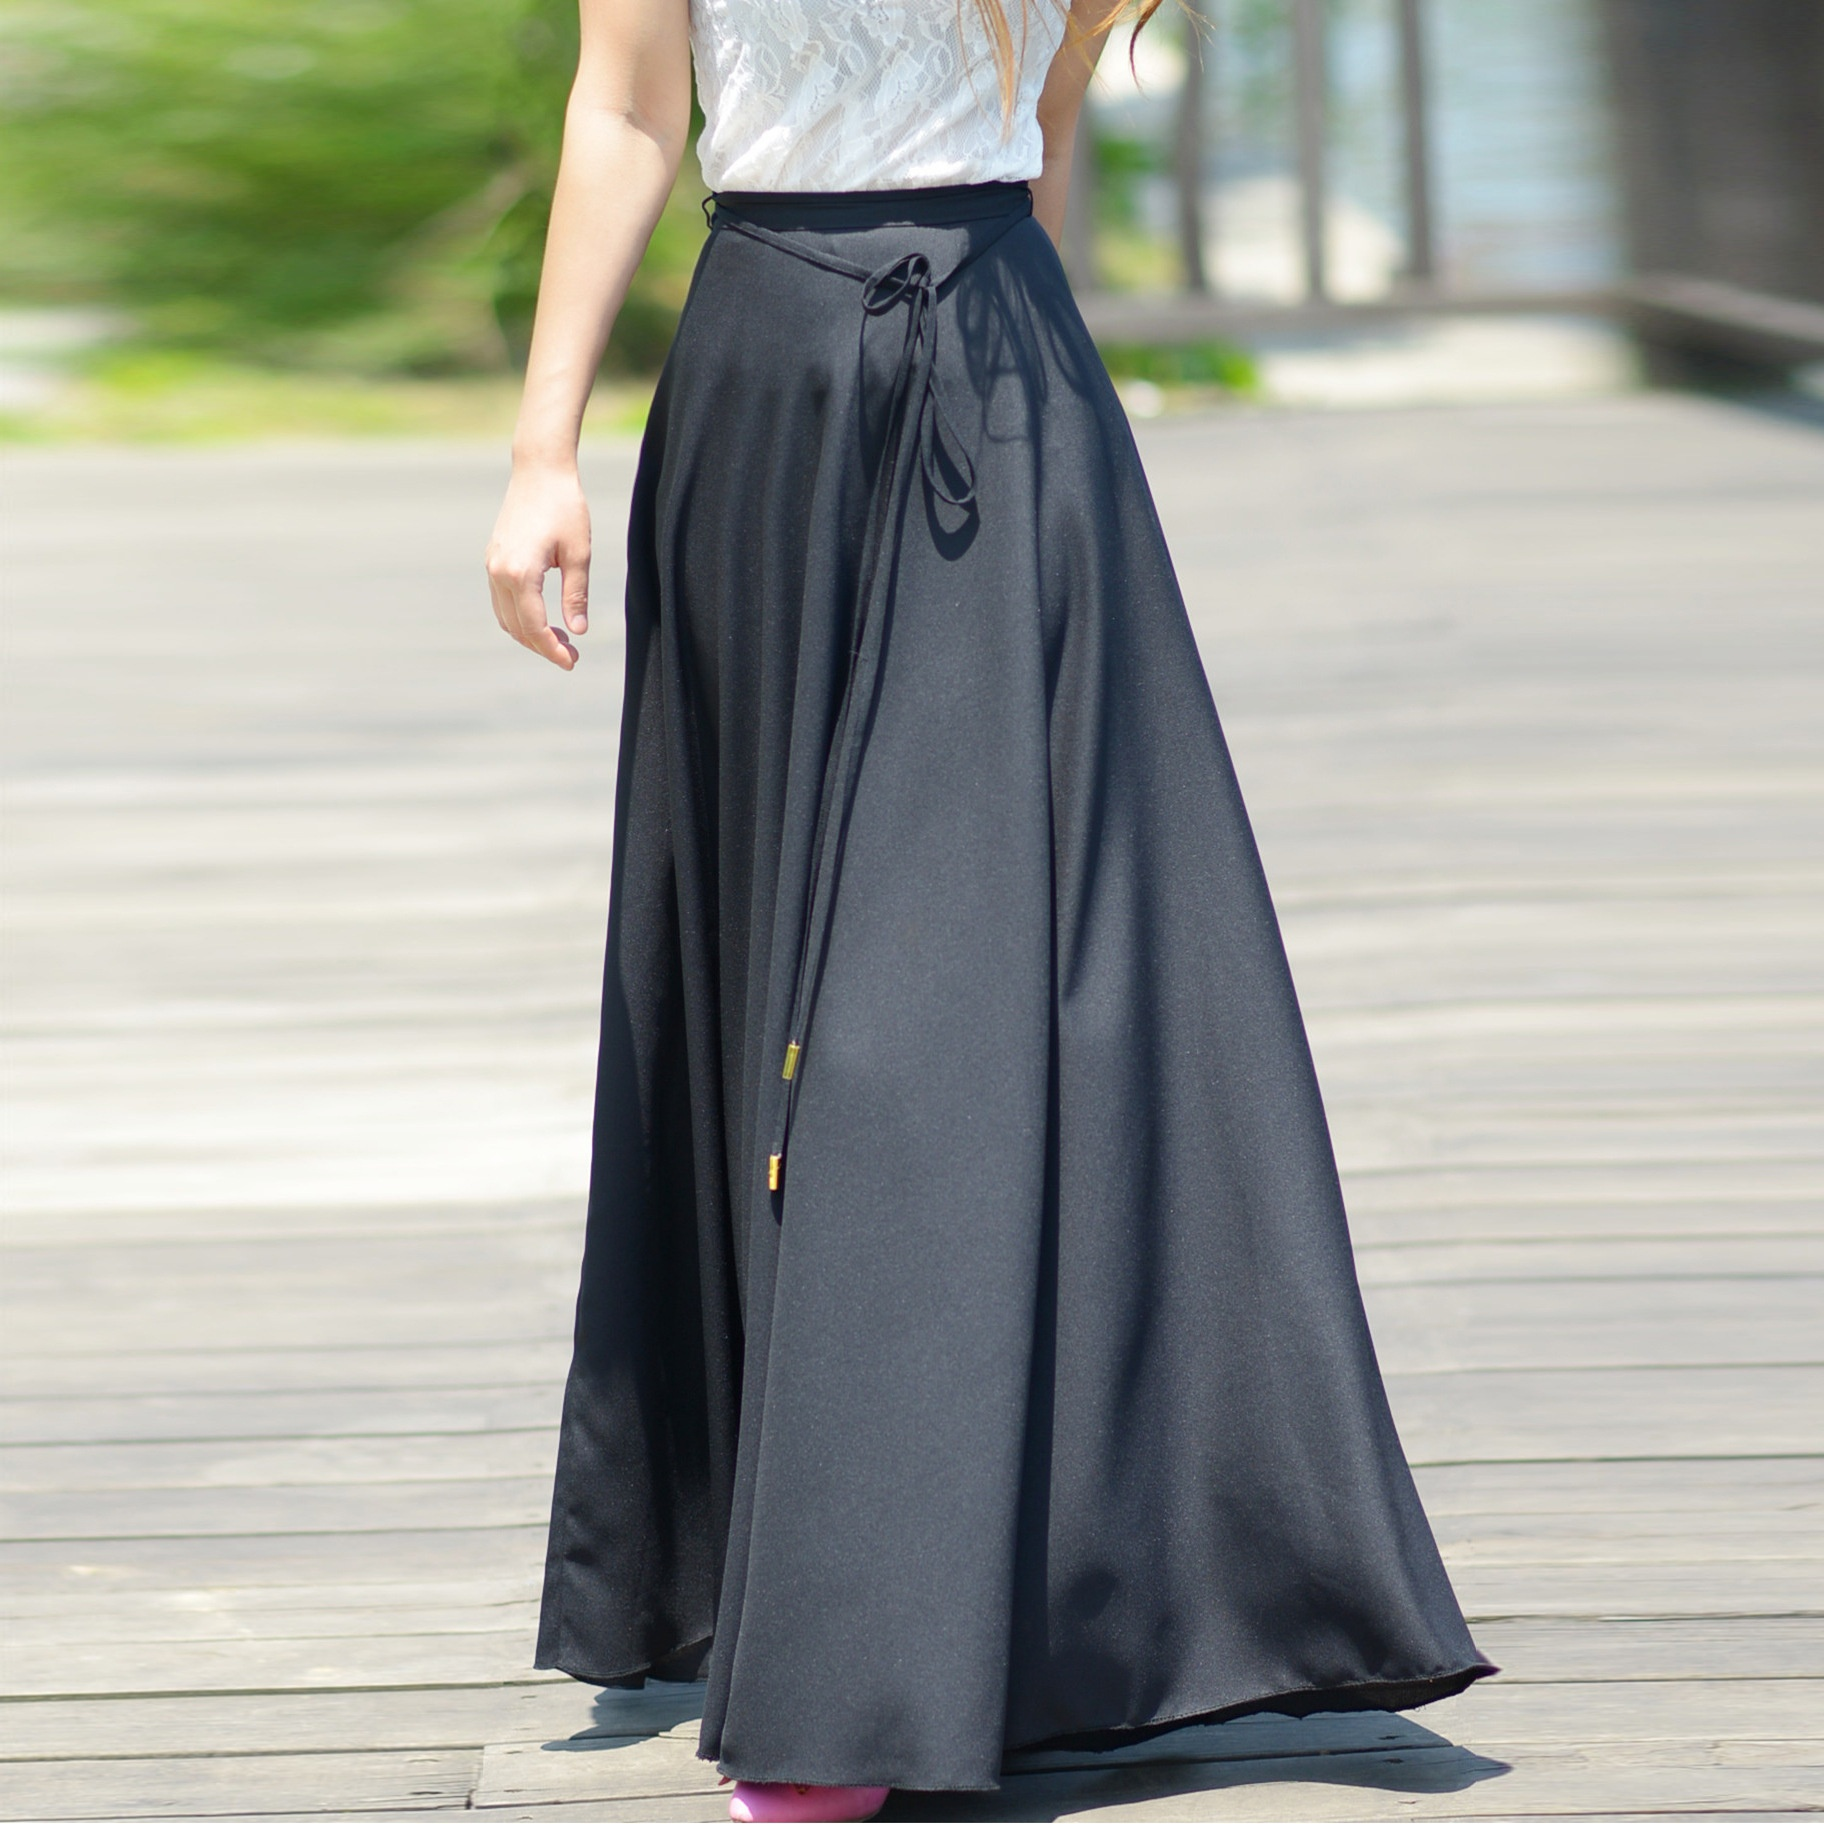 Womens Thick Chiffon Retro Long Maxi Skirt Vintage Spring Summer Autumn All-Match High-quality Maxi Large Pendulum Skirt